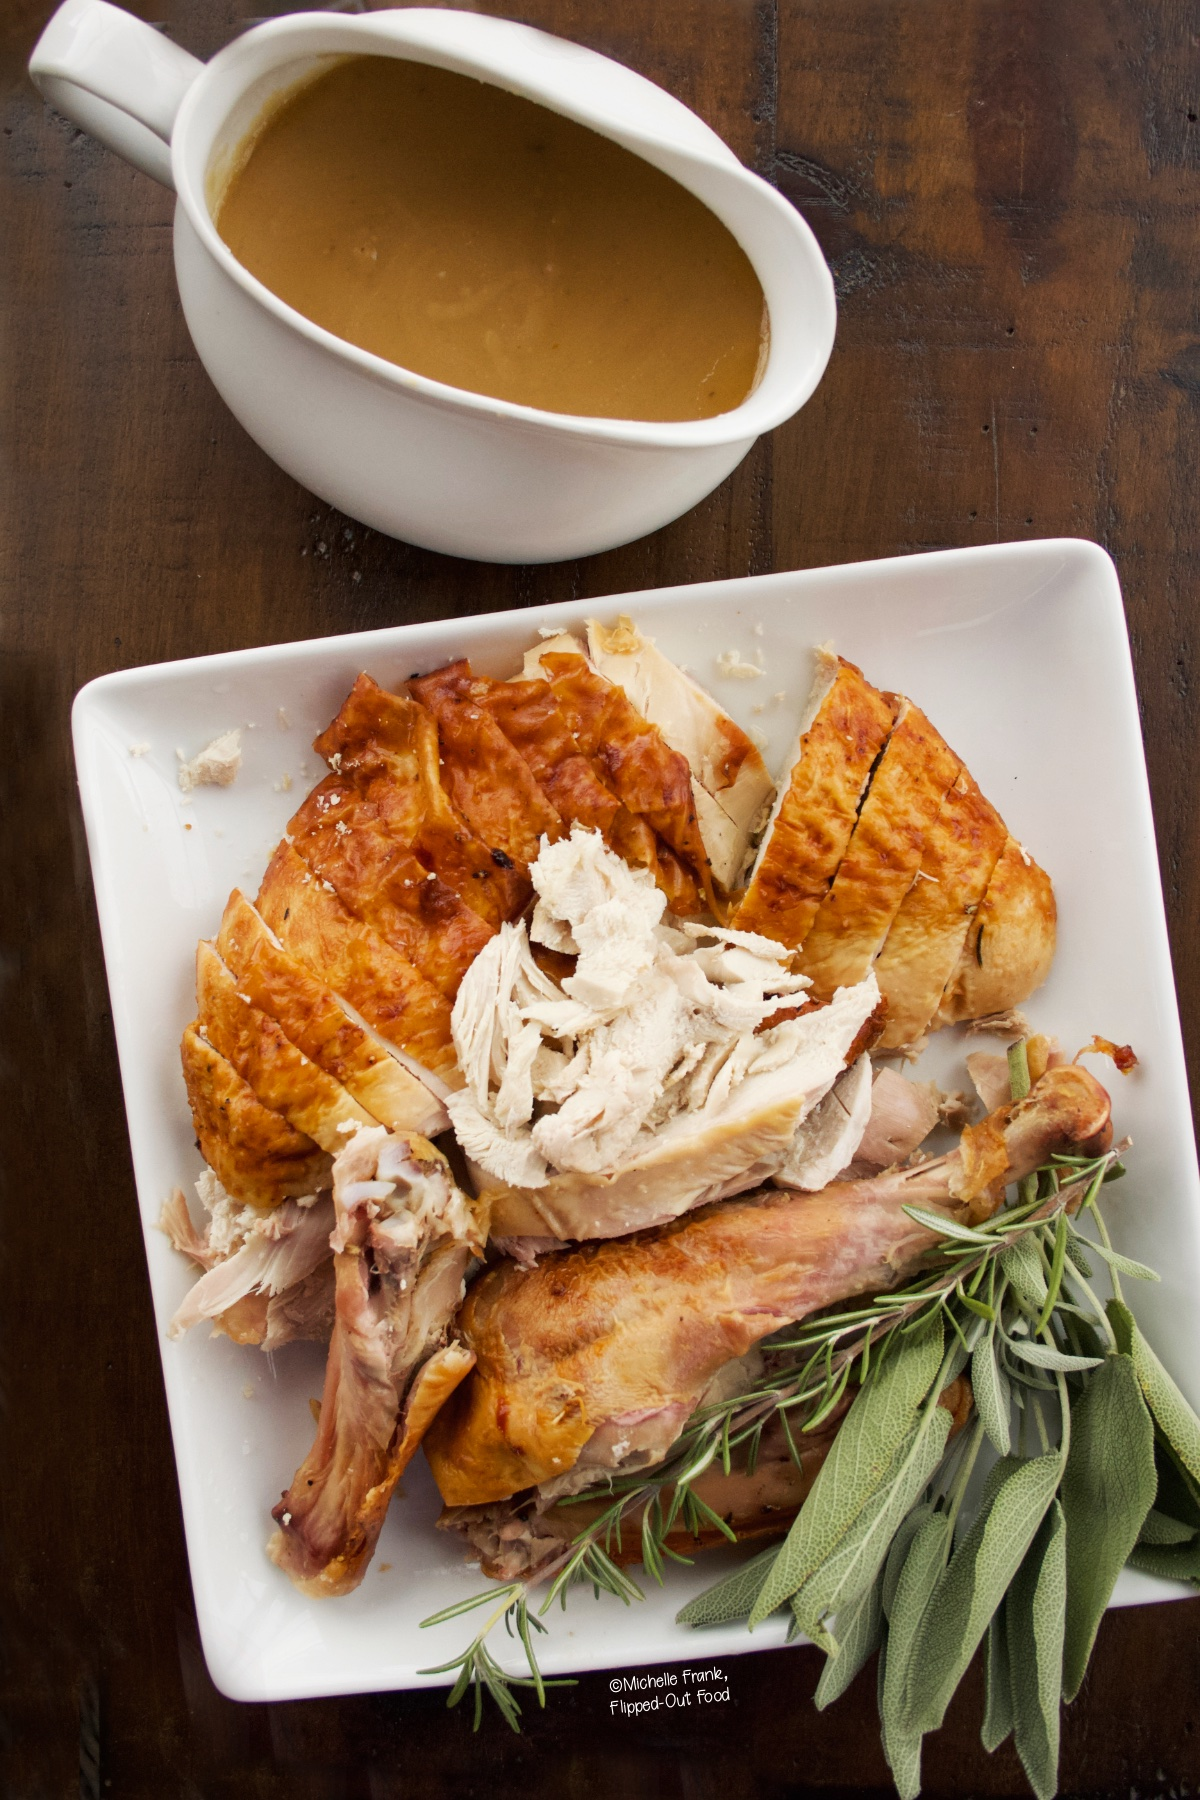 Easy Turkey Gravy in a white, porcelain gravy boat sitting next to a platter of sliced turkey garnished with sage.